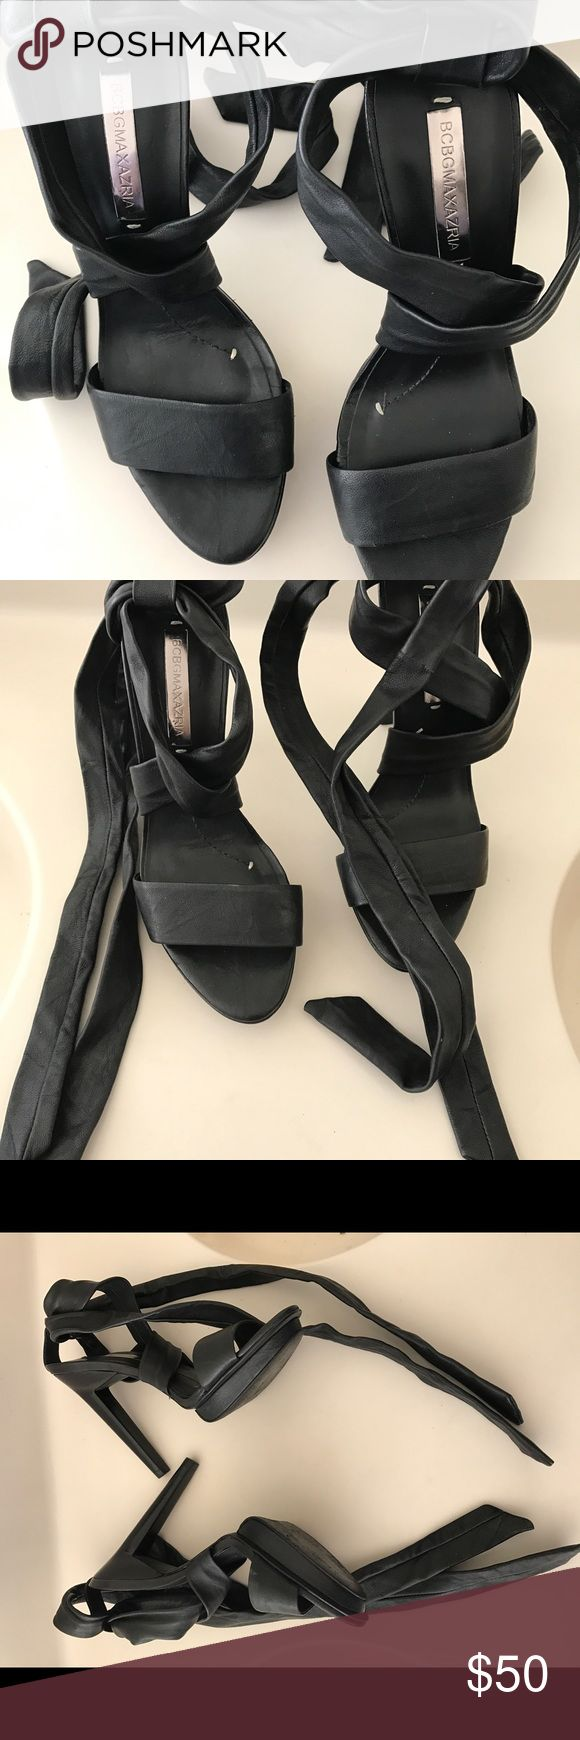 """Beautiful Black Tie Up BCBGMaxAria Sandals Beautiful BCBGMaxazria  Tie Up Heels in excellent preowned condition. Please visit my closet and view my  listings. There are more styles and sizes. Also contact me if you have any additional questions. Thanks.   Heel:5"""" Size:8.5 BCBGMaxAzria Shoes Heels"""